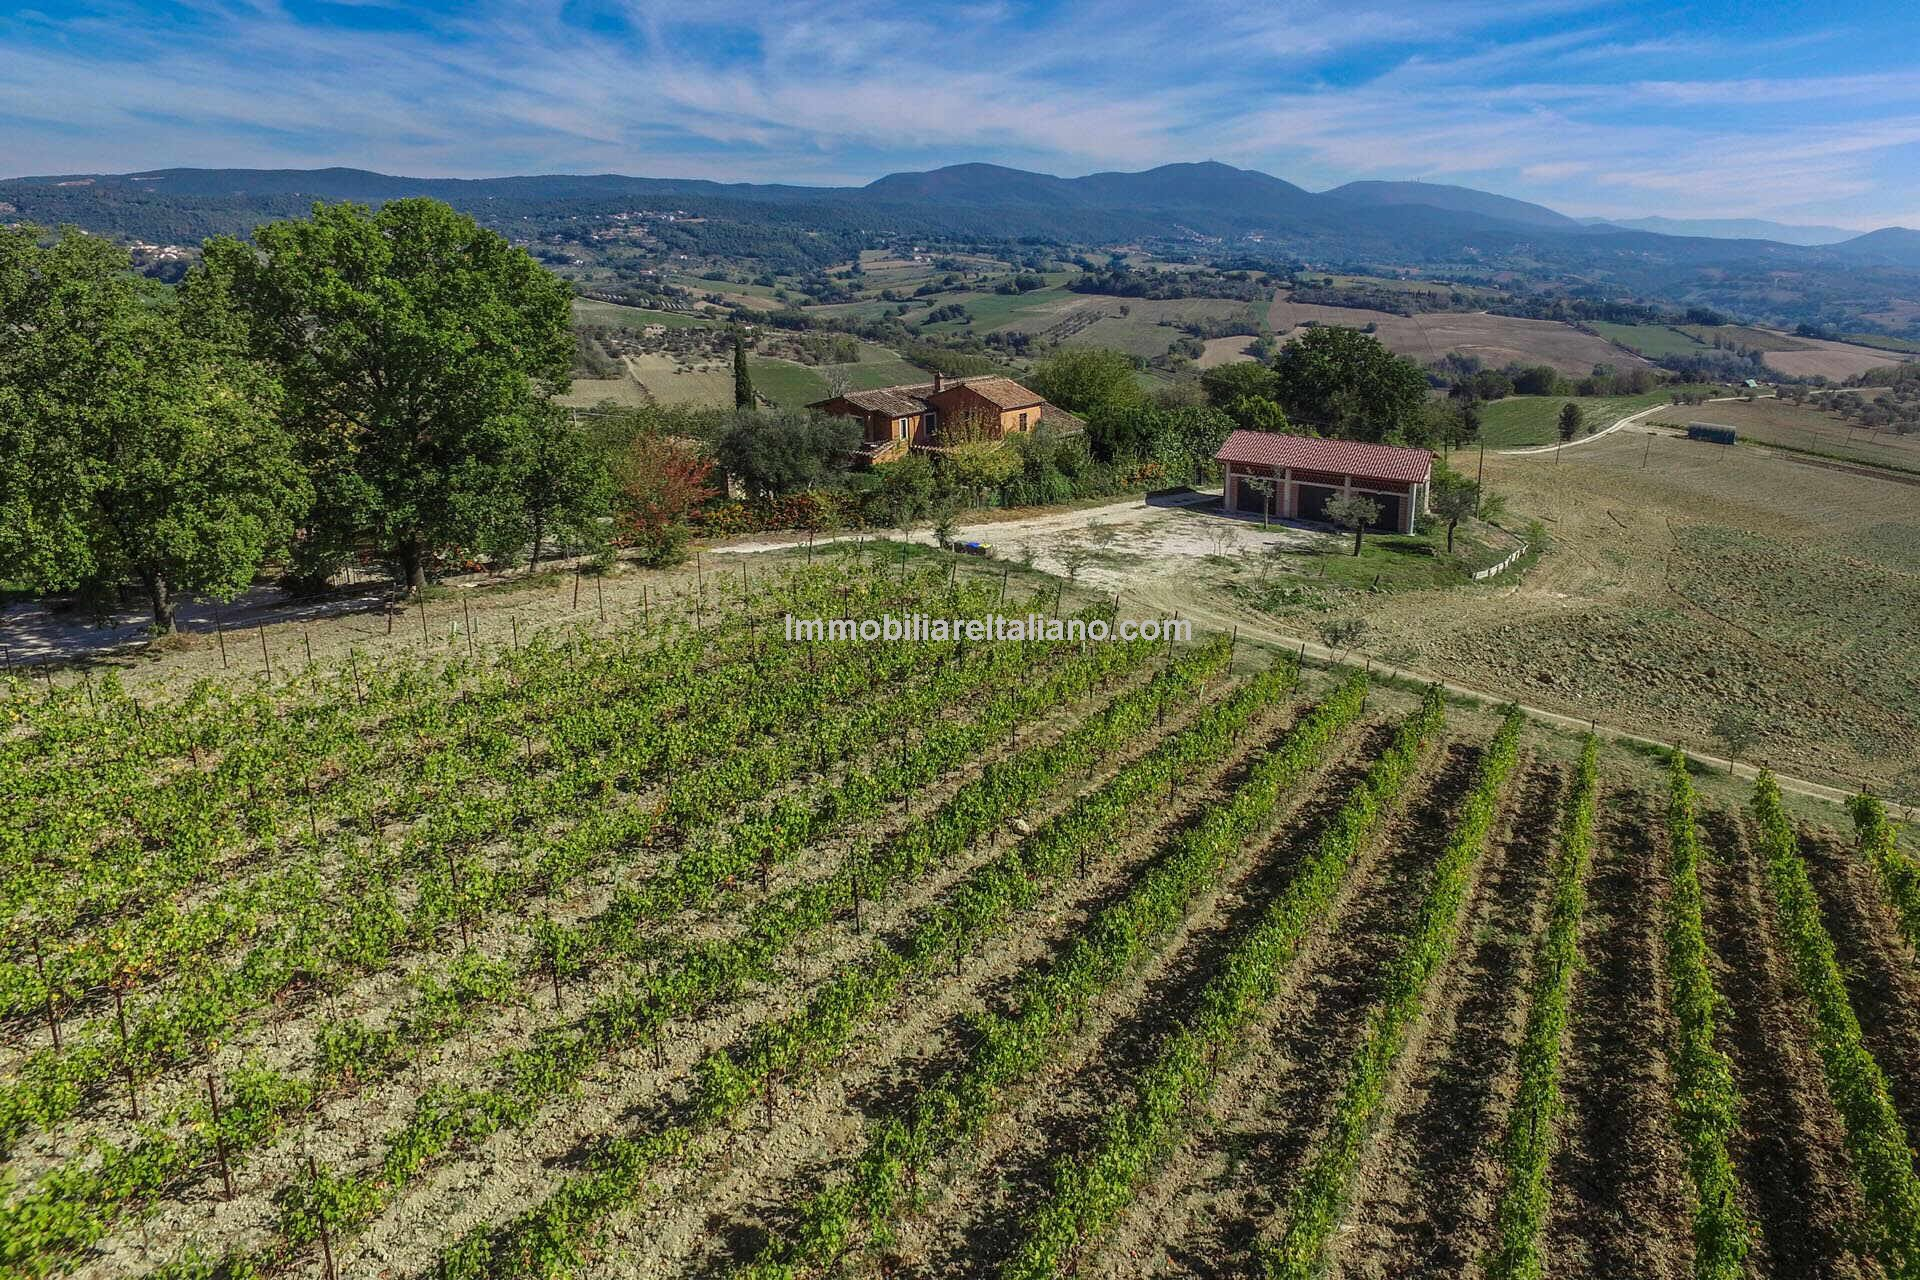 Farmhouse with Vineyard for sale Umbria Italy